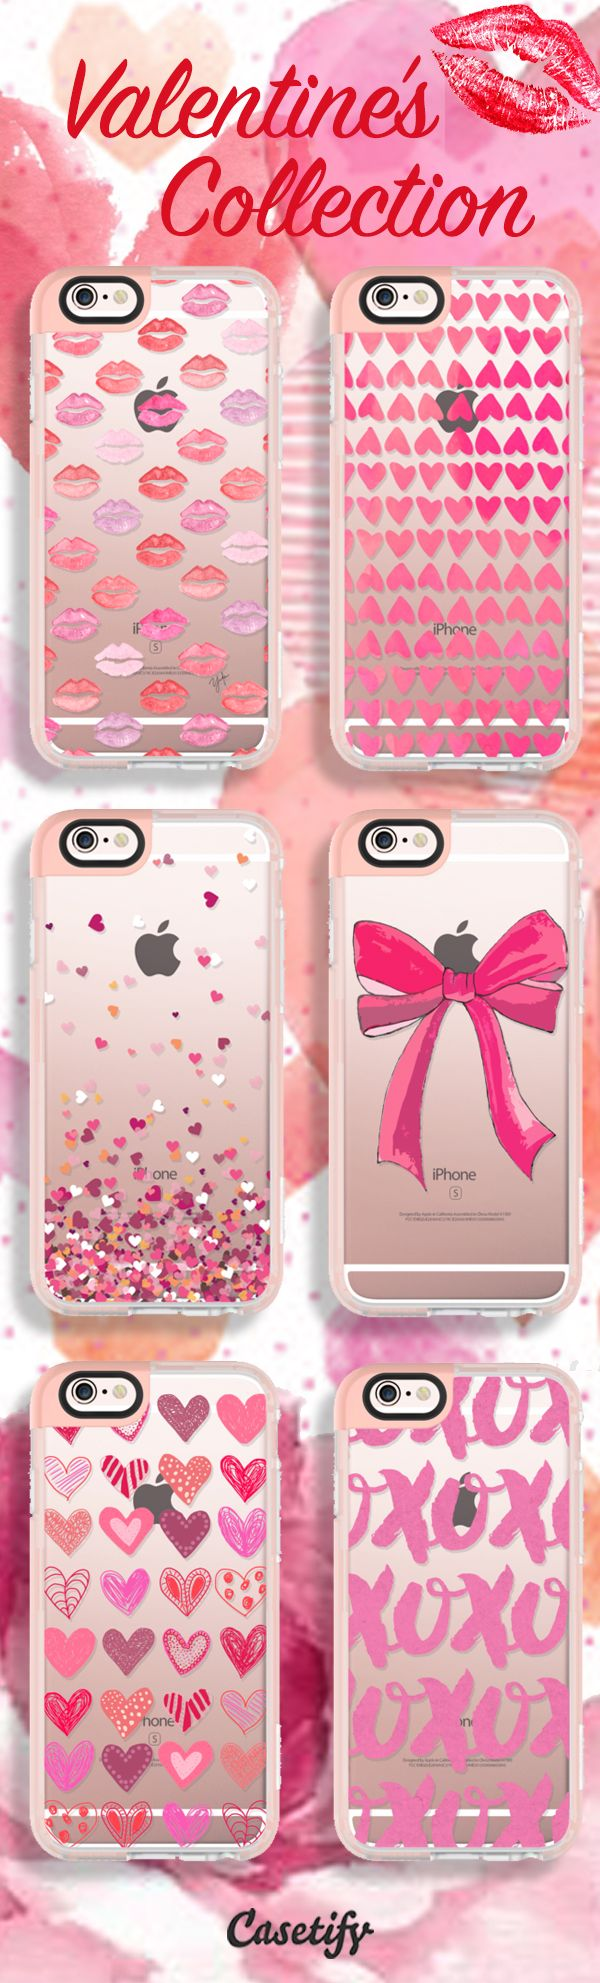 Be mine. Click here to shop our #ValentinesDay Collection: https://www.casetify.com/collections/valentines#/?vday-cutoff=Y